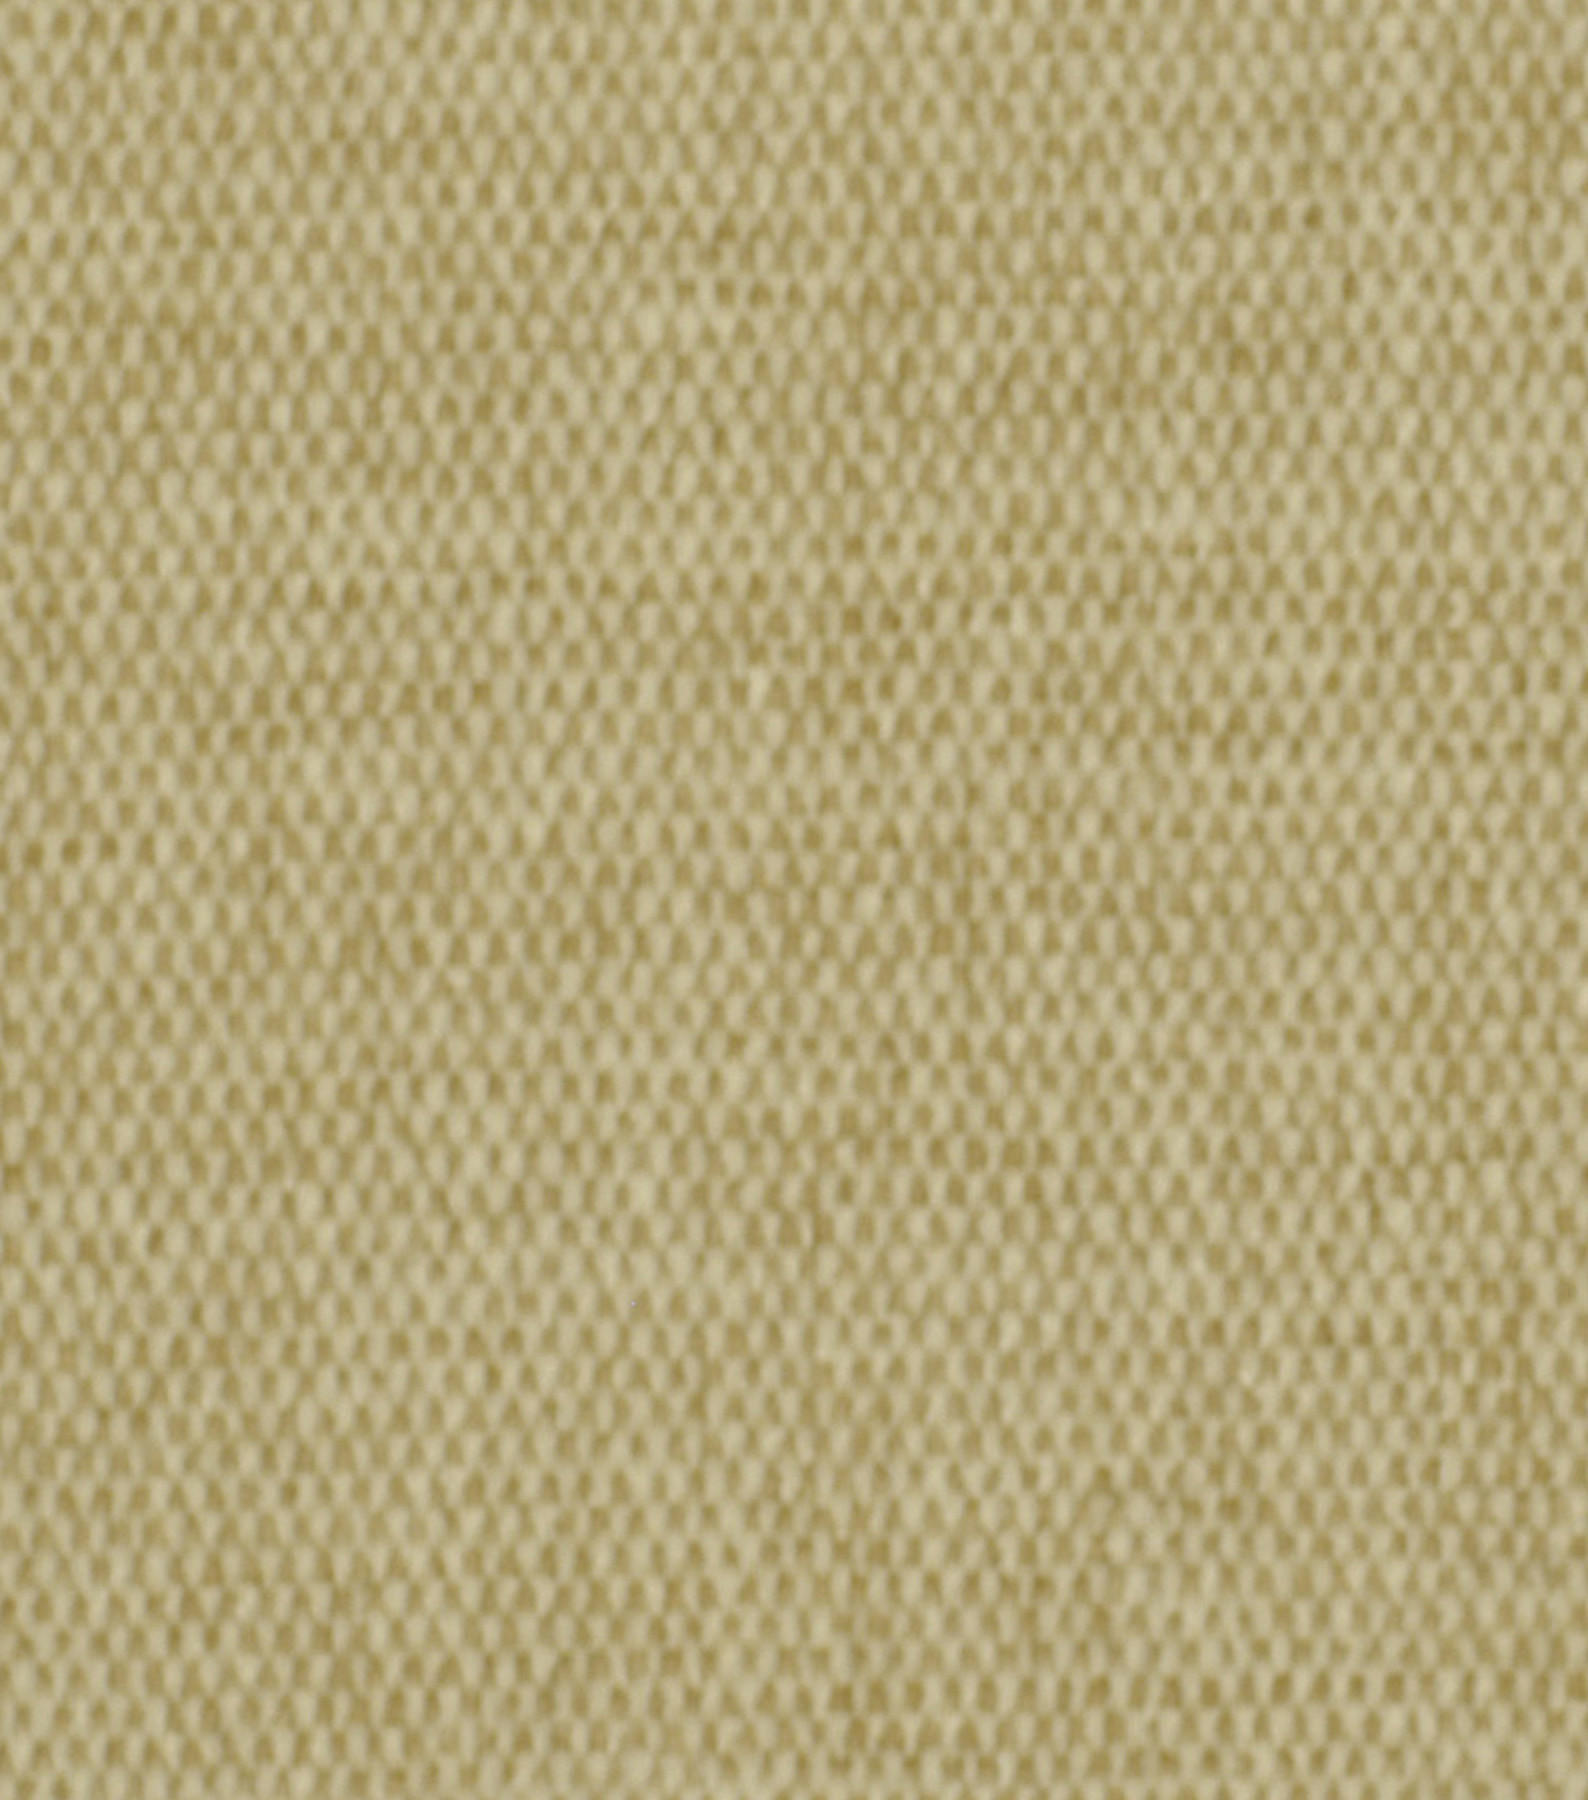 Home Decor 8\u0022x8\u0022 Fabric Swatch-Signature Series Rodez Sand